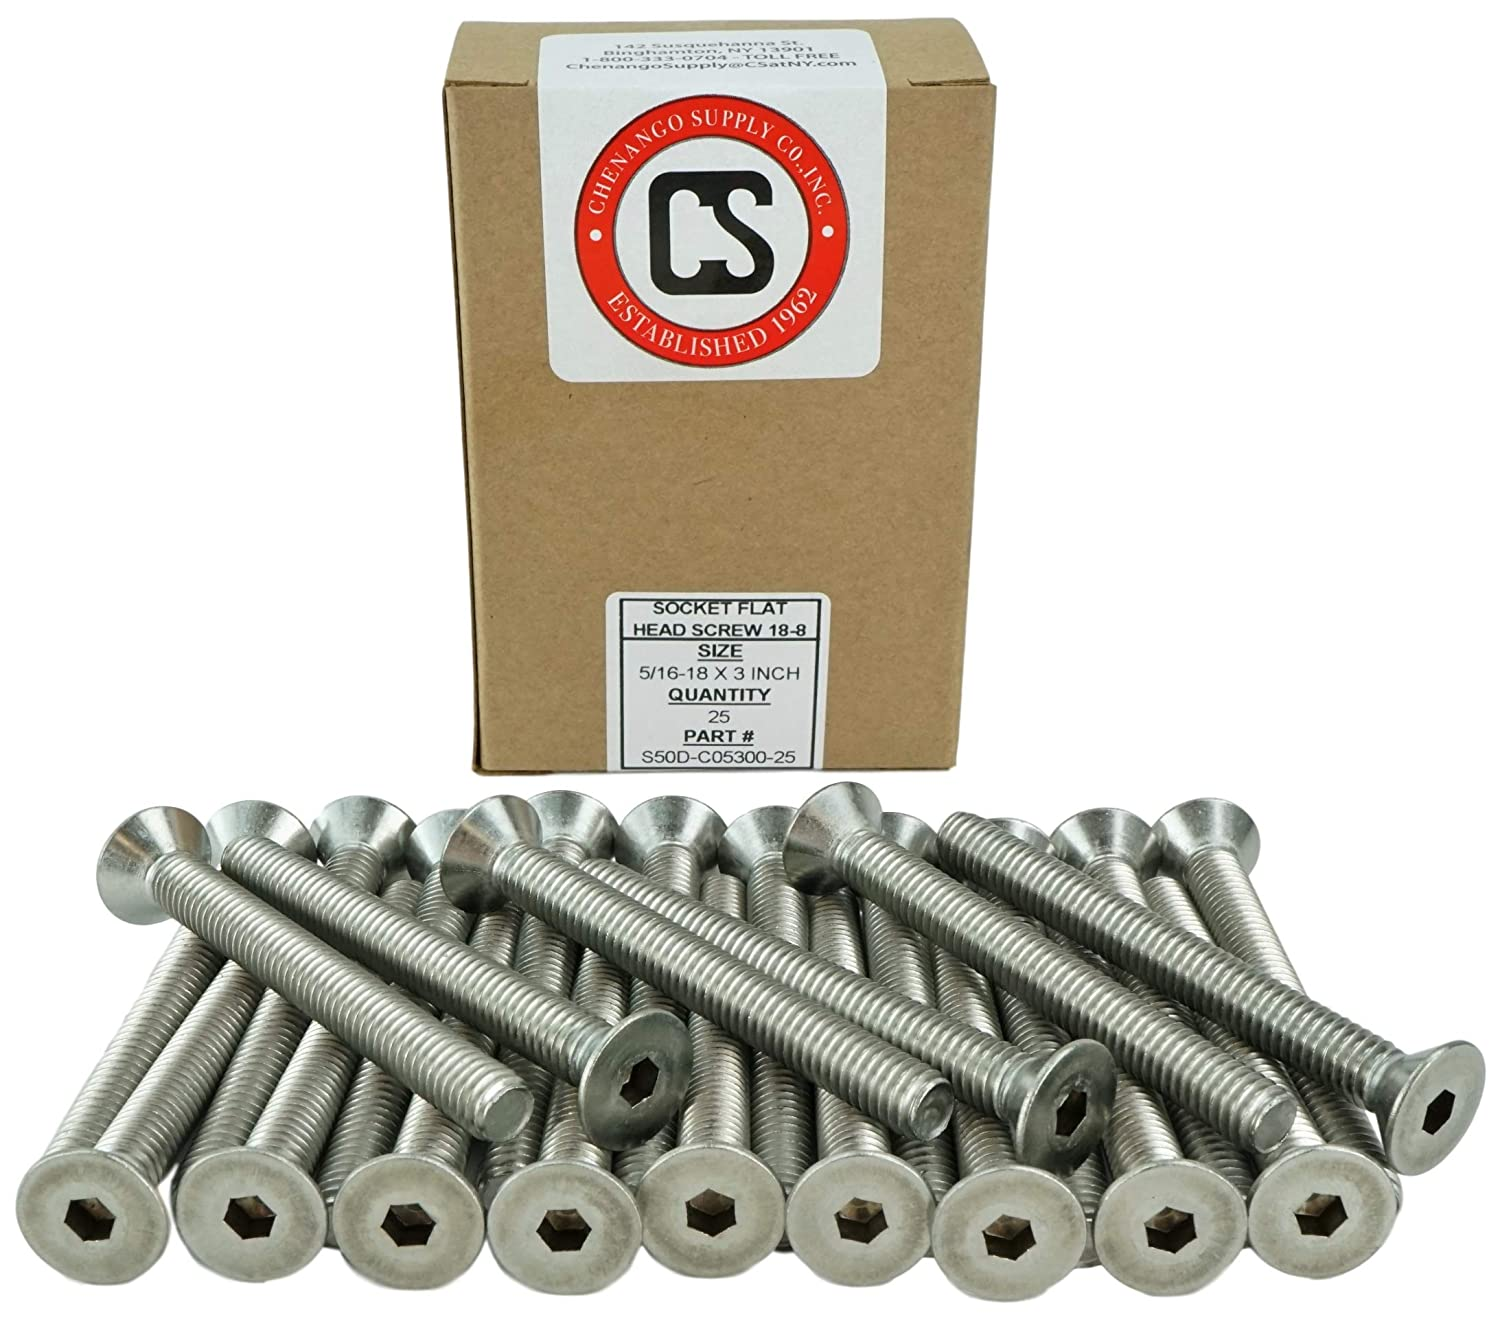 Stainless 5//16-18 x 1-3//4 Coarse Thread 5//8 to 3 Available 5//16-18 x 1-3//4 Stainless Steel 18-8 Hex Drive Socket Flat Head Screws Full Thread